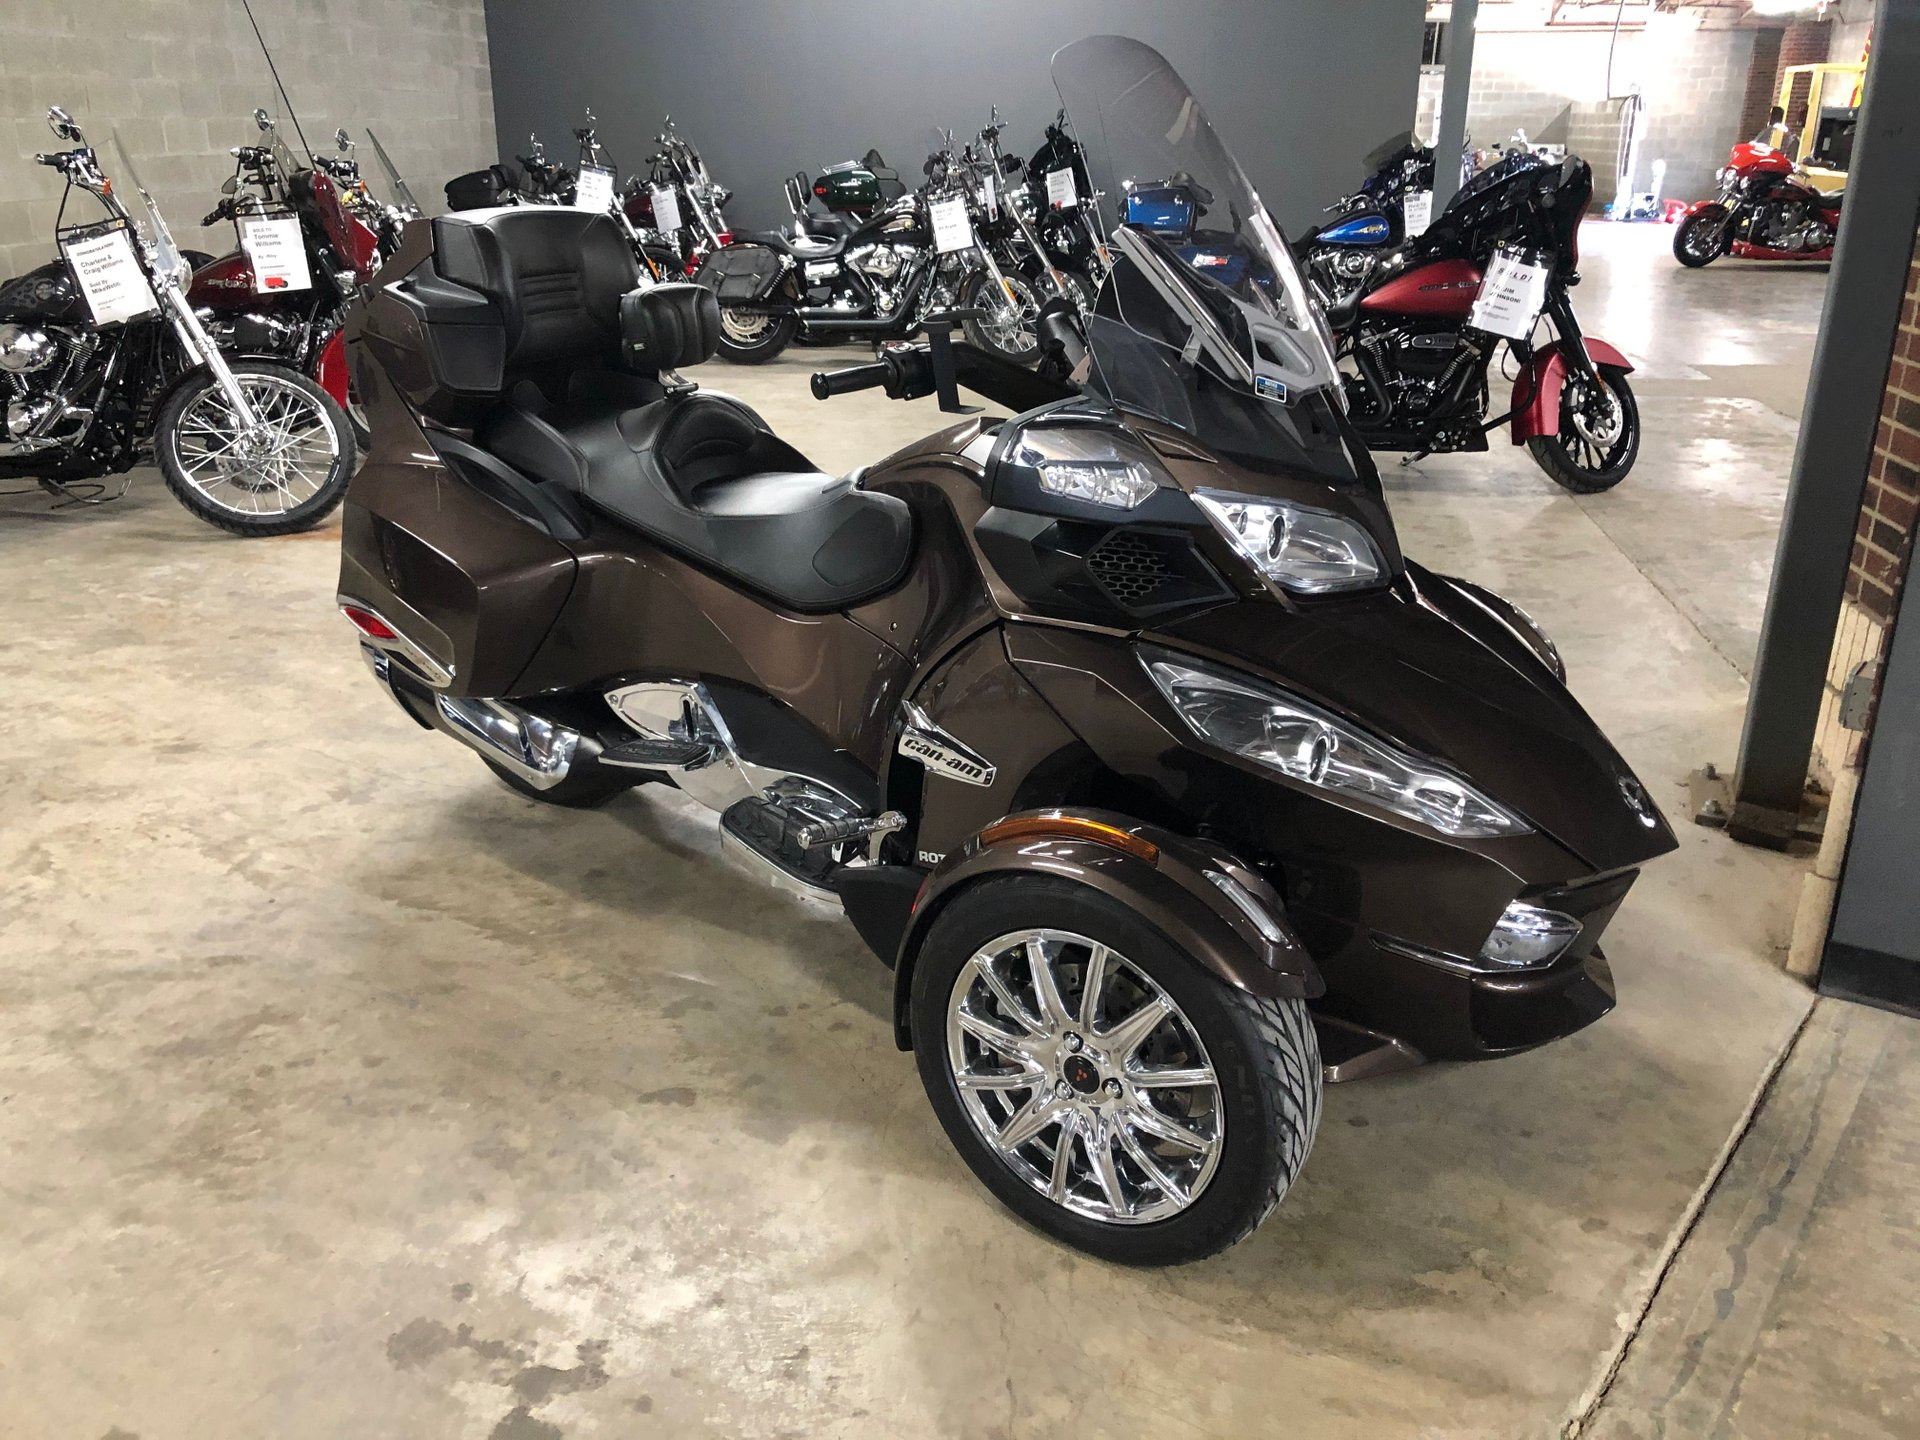 2013 can am spyder rt se5 limited trike